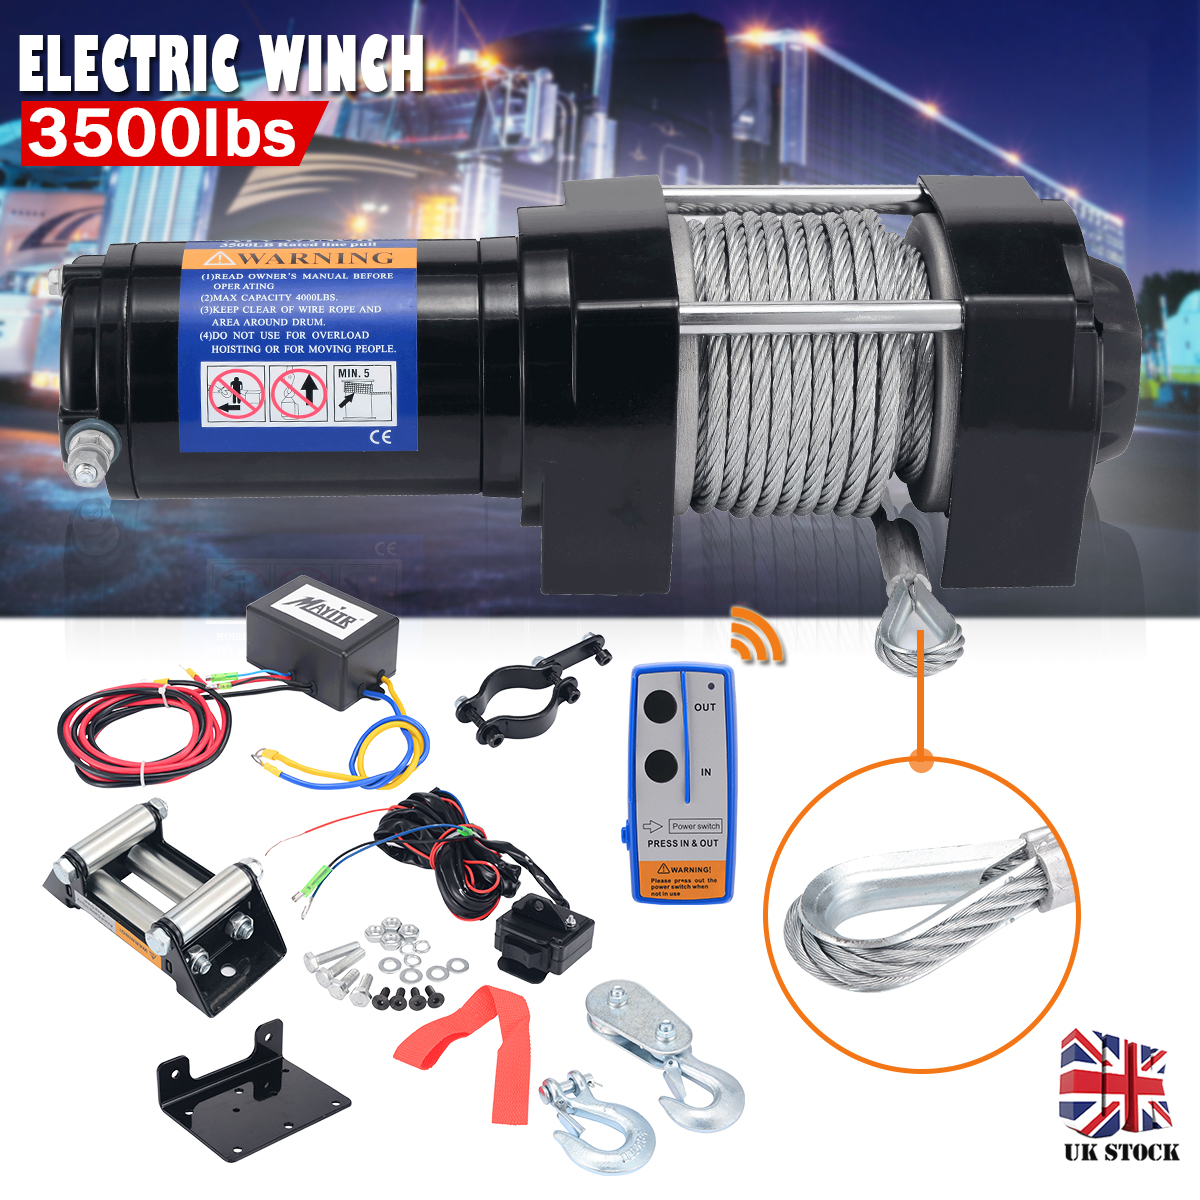 3500LBS Electric Recovery Winch Portable Electrical Winch 12V DC Boat Kit With Remove Control For ATVs And ATV Boat Trailer Tool